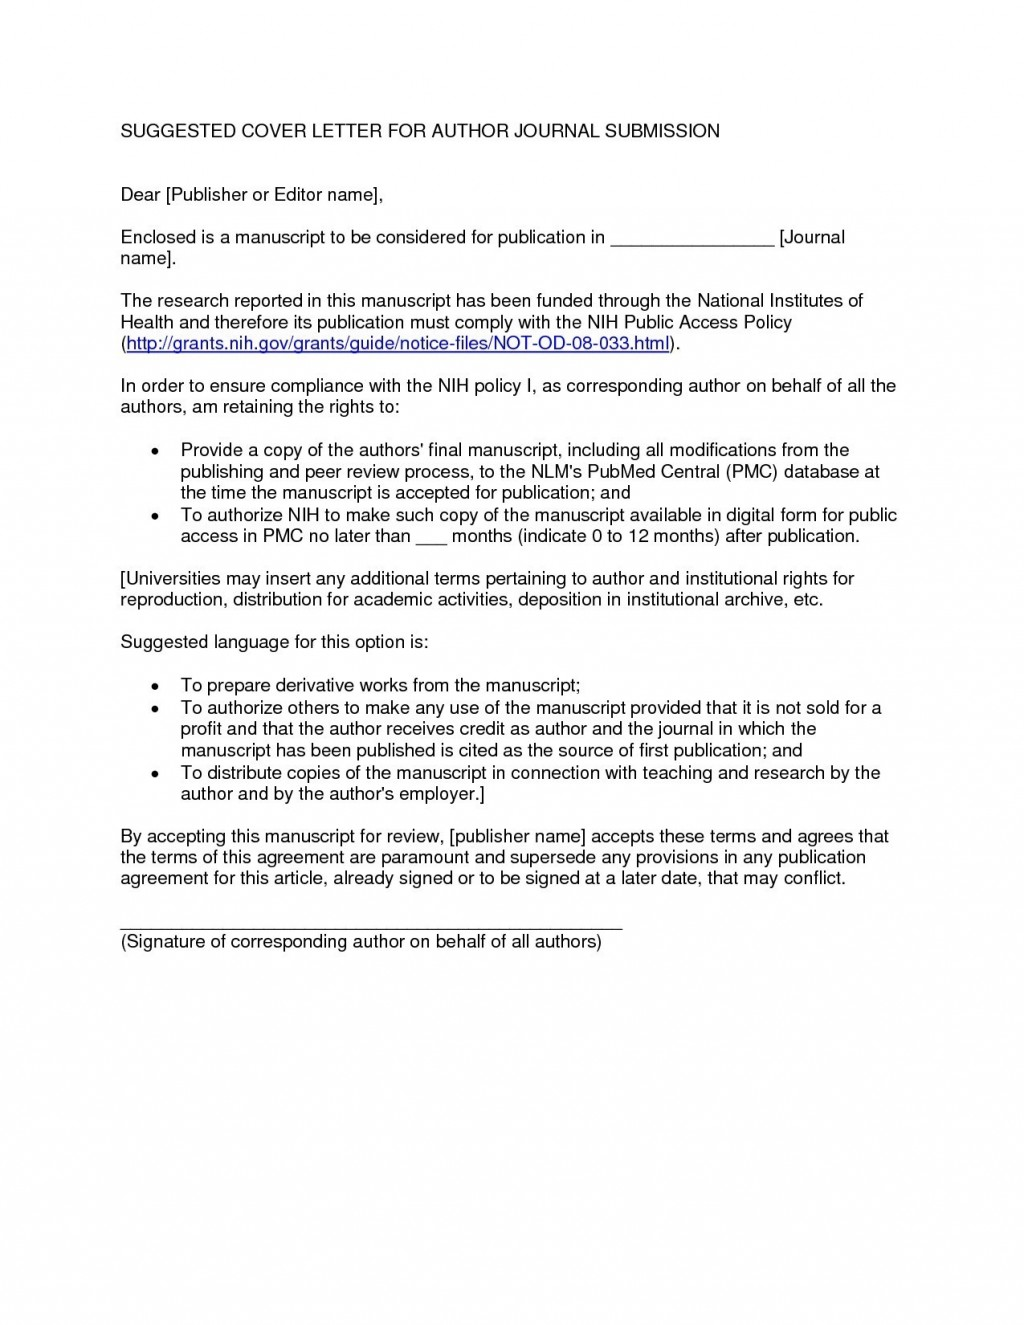 013 Cover Letter Template Manuscript Submission New Example To Journal Valid Sample Of For Article Singular Publication Model Large